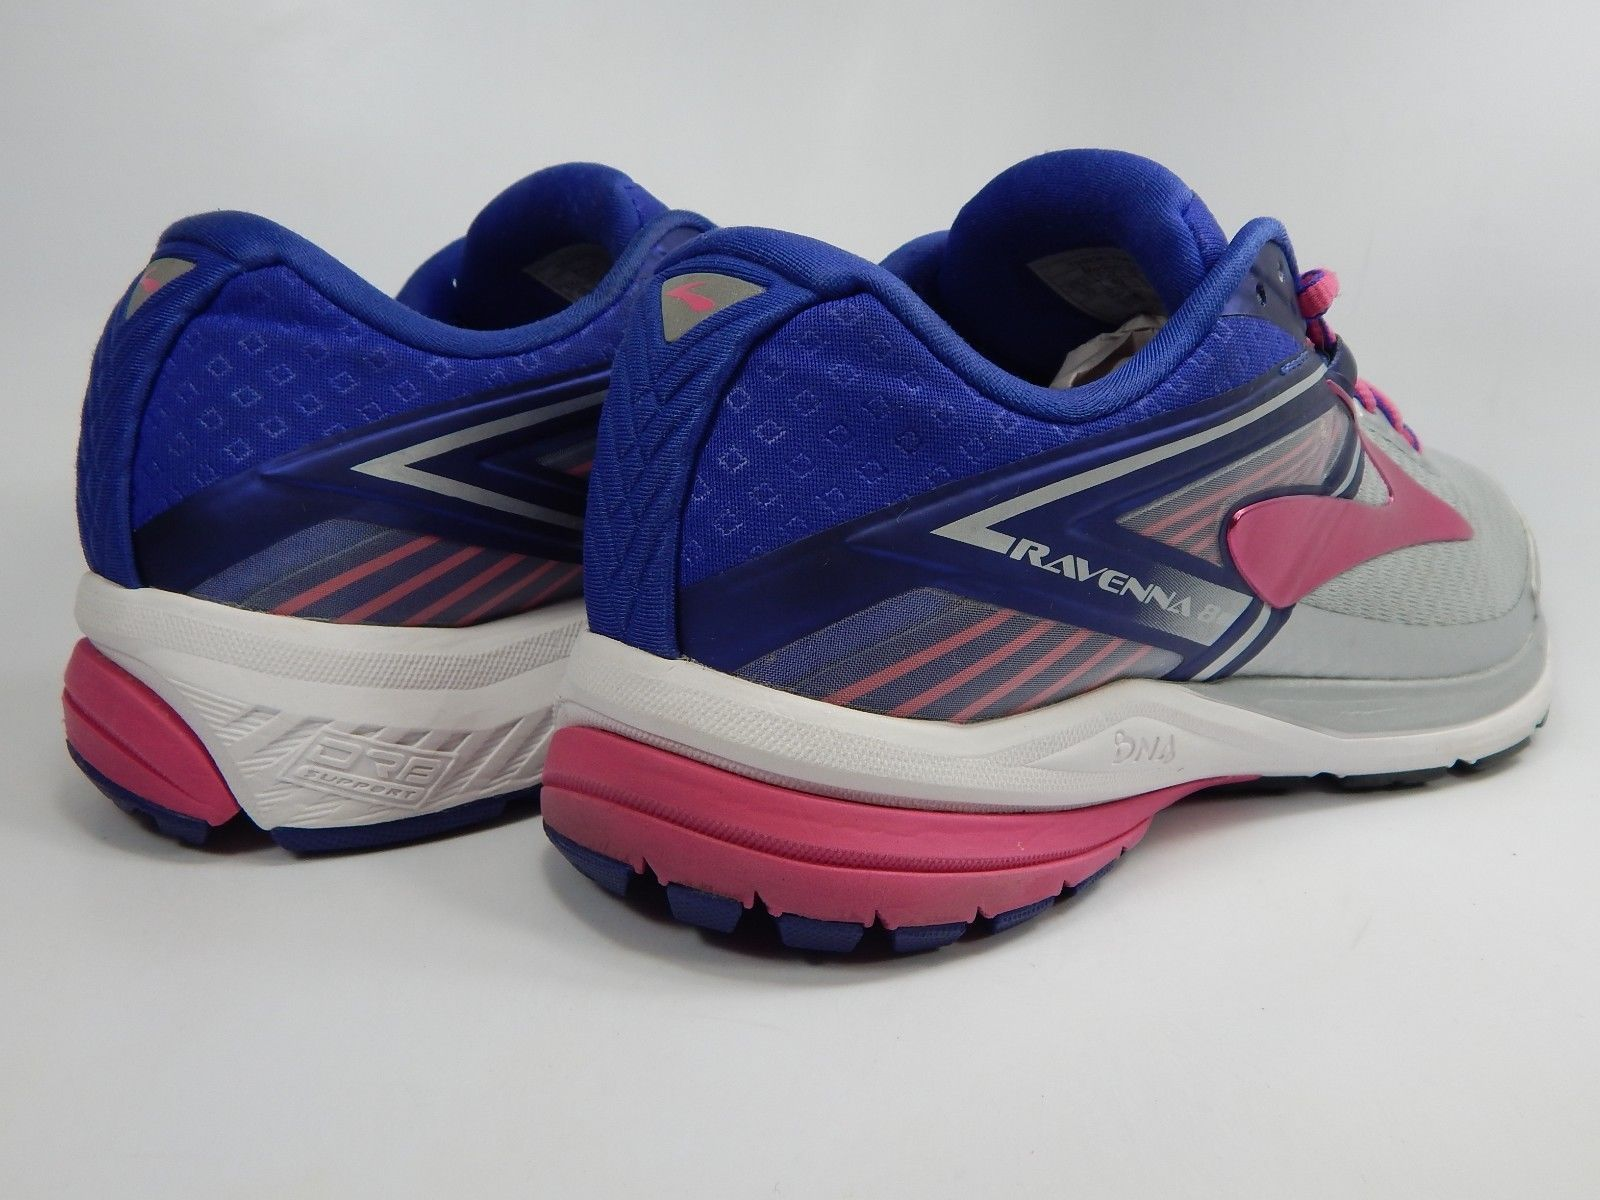 Brooks Ravenna 8 Running Shoes Women's Size US 10 M (B) EU 42 Silver 1202381B089